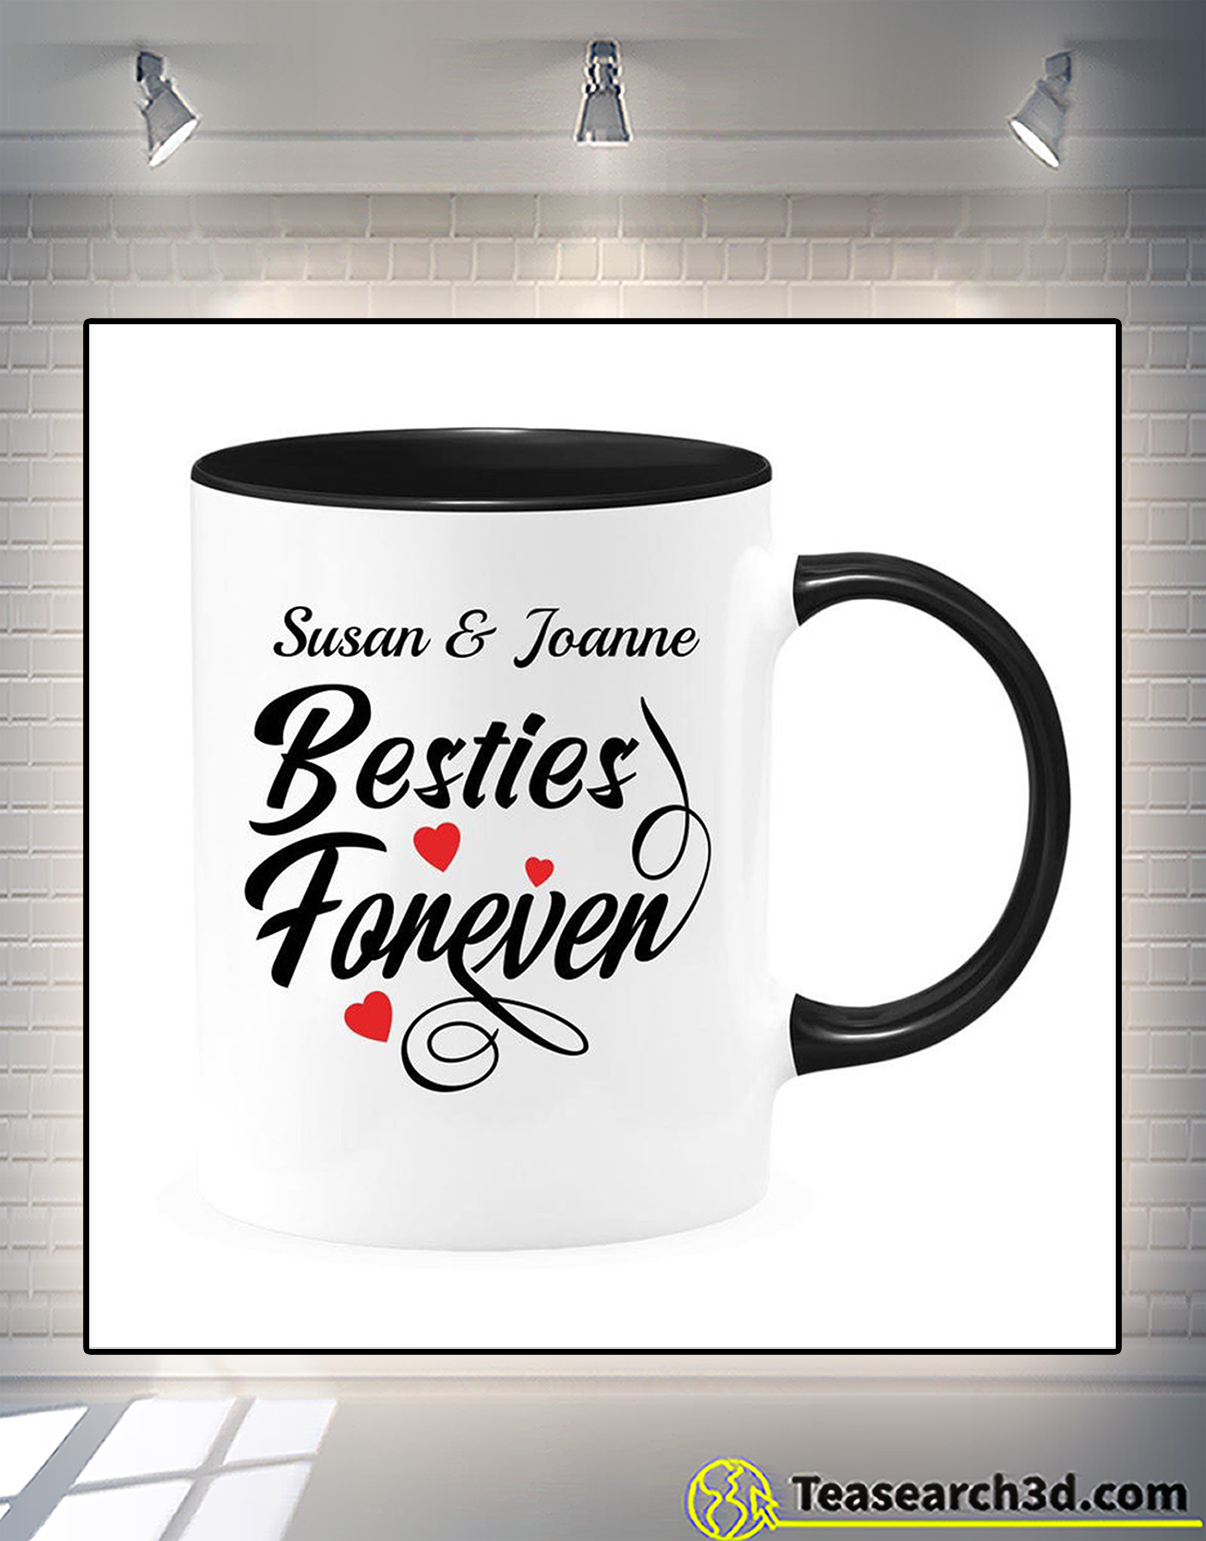 Personalized custom name besties foneven accent mug 2